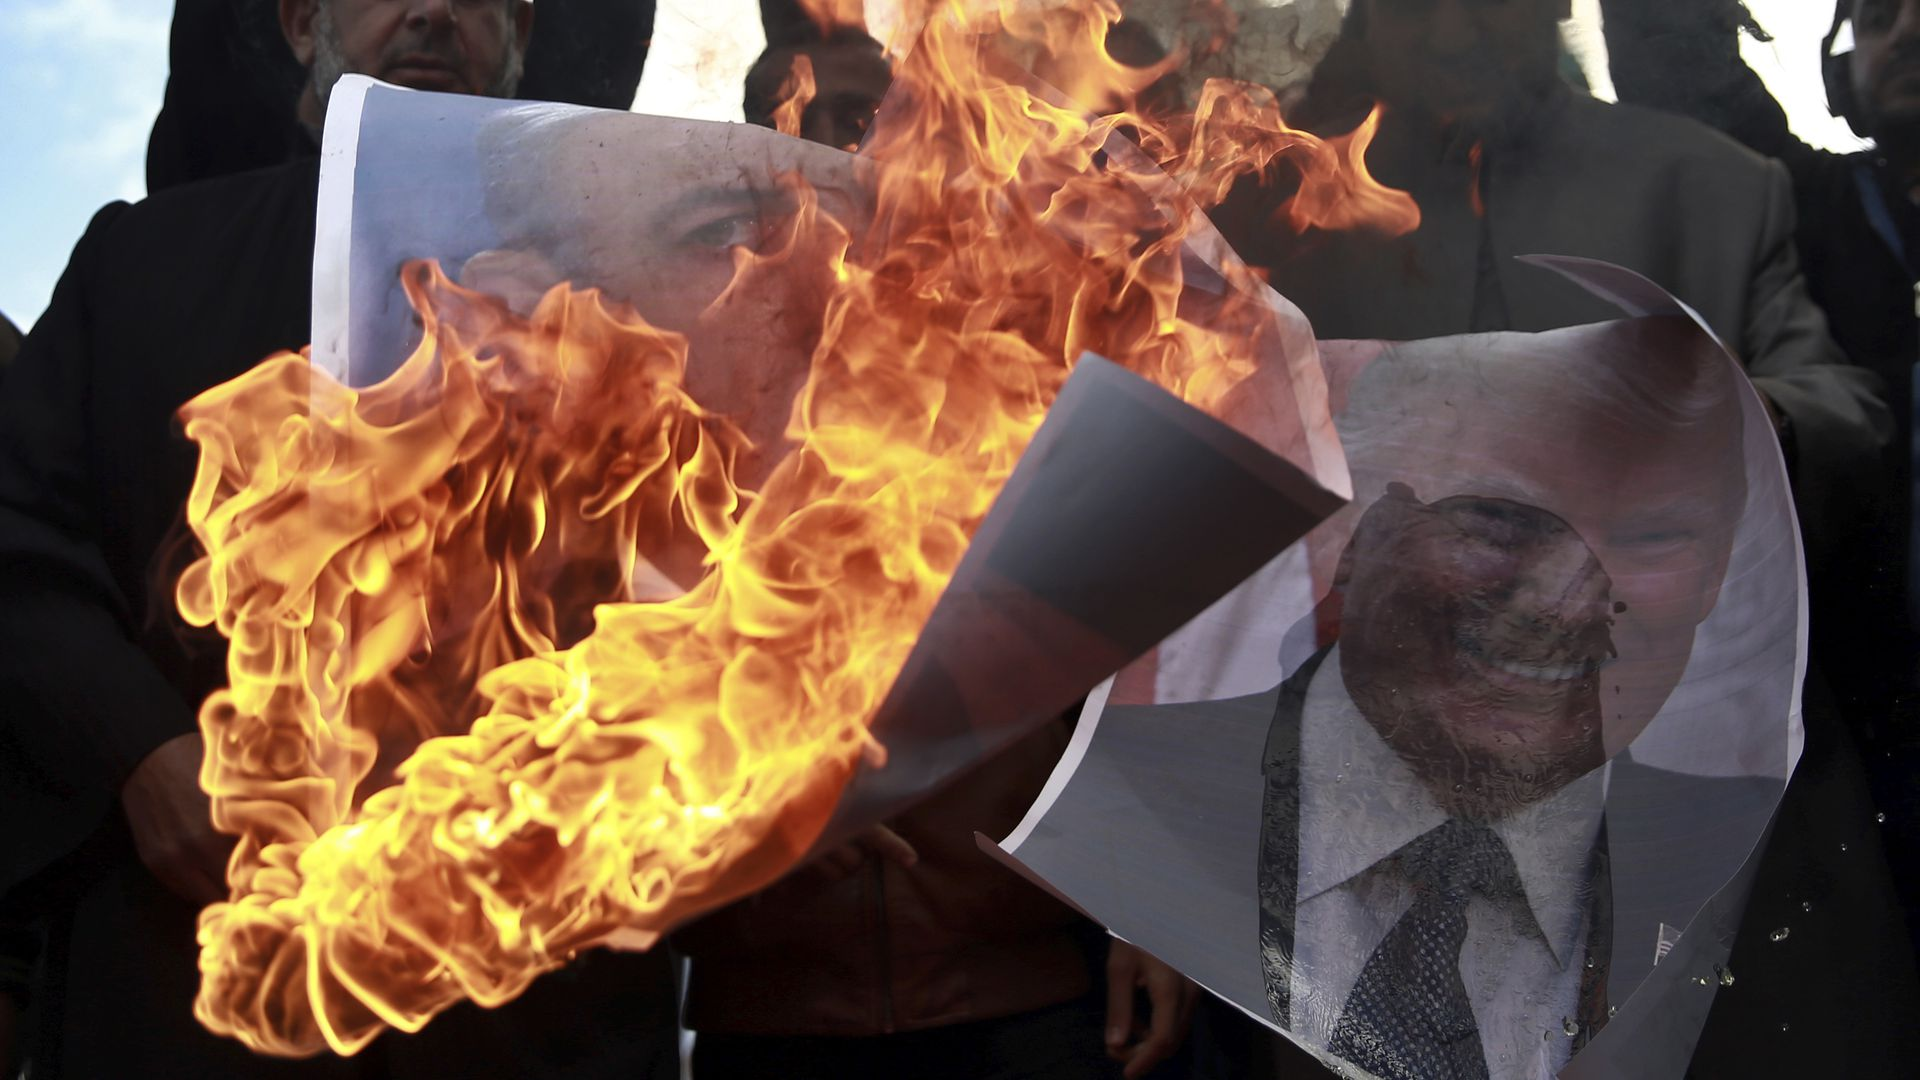 Palestinians burn pictures of Donald Trump and Israeli PM Netanyahu